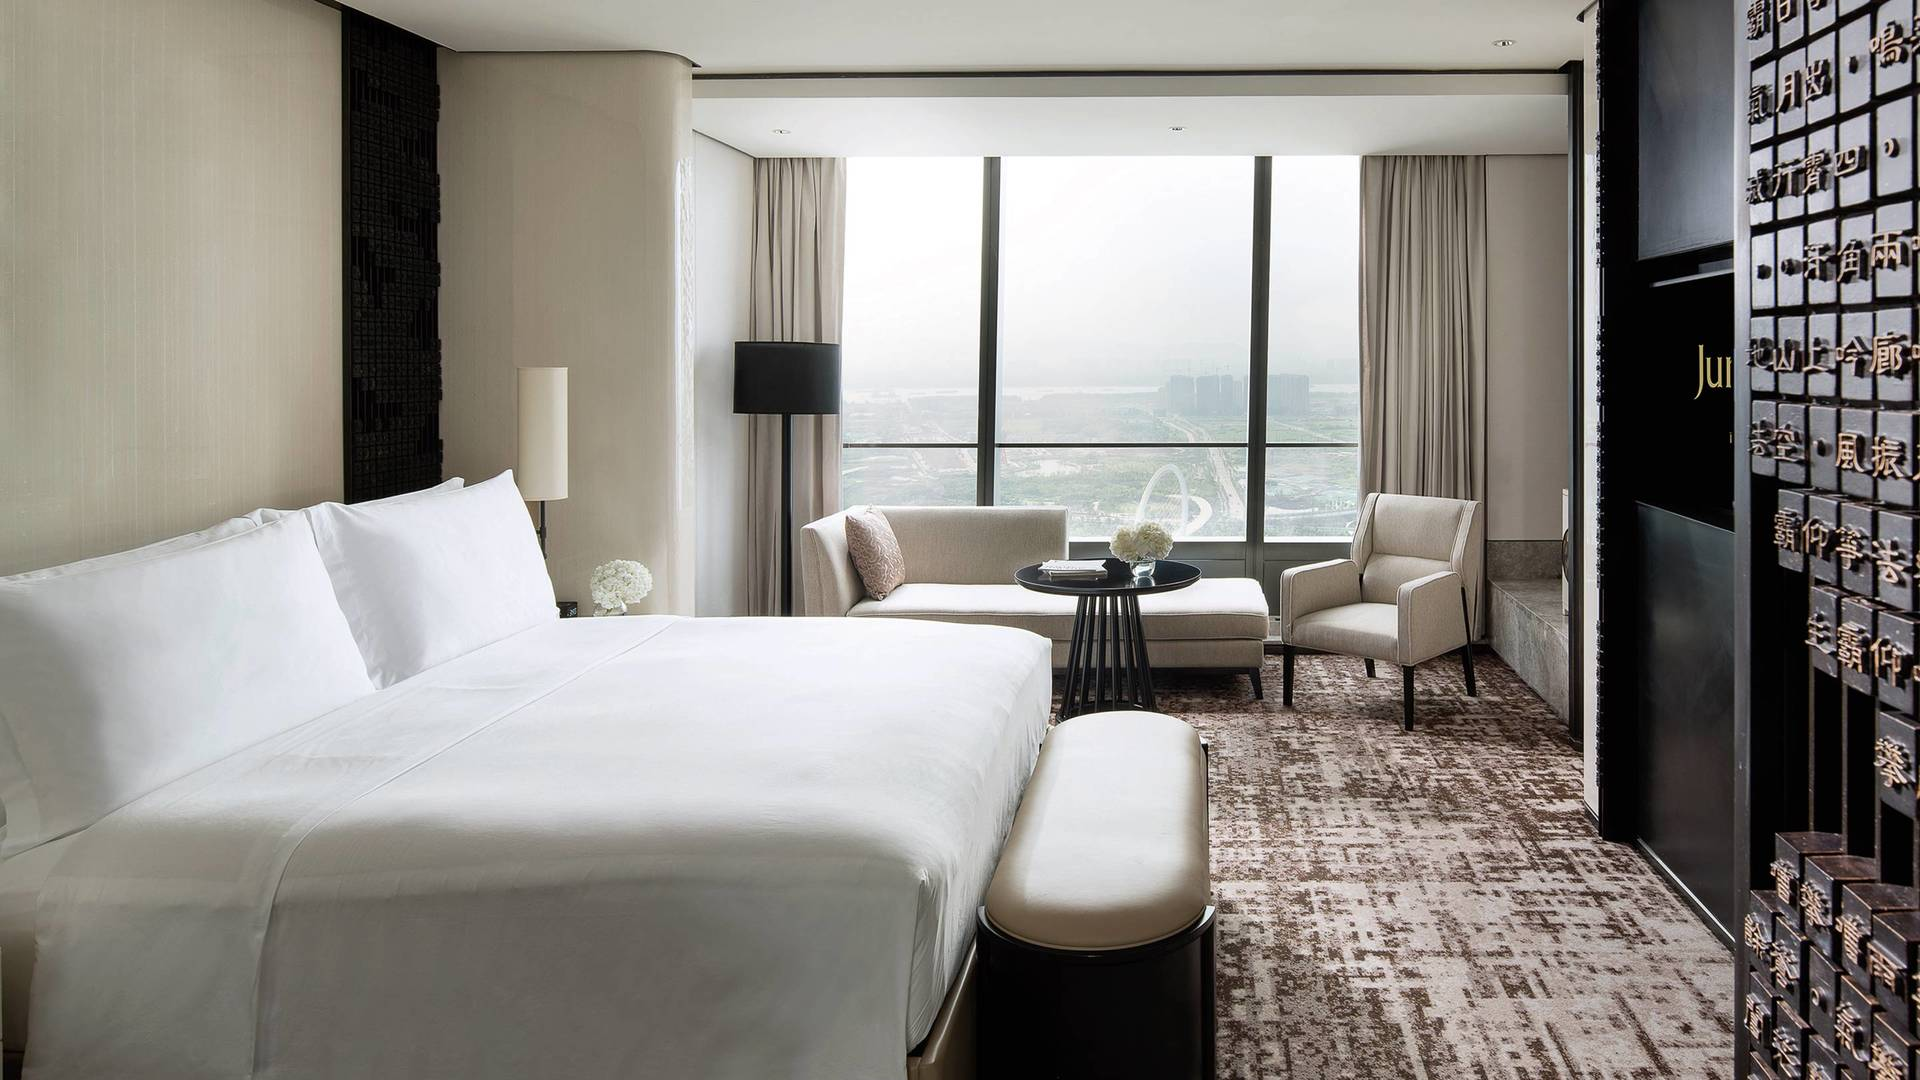 Jumeirah Nanjing Premier room with River view